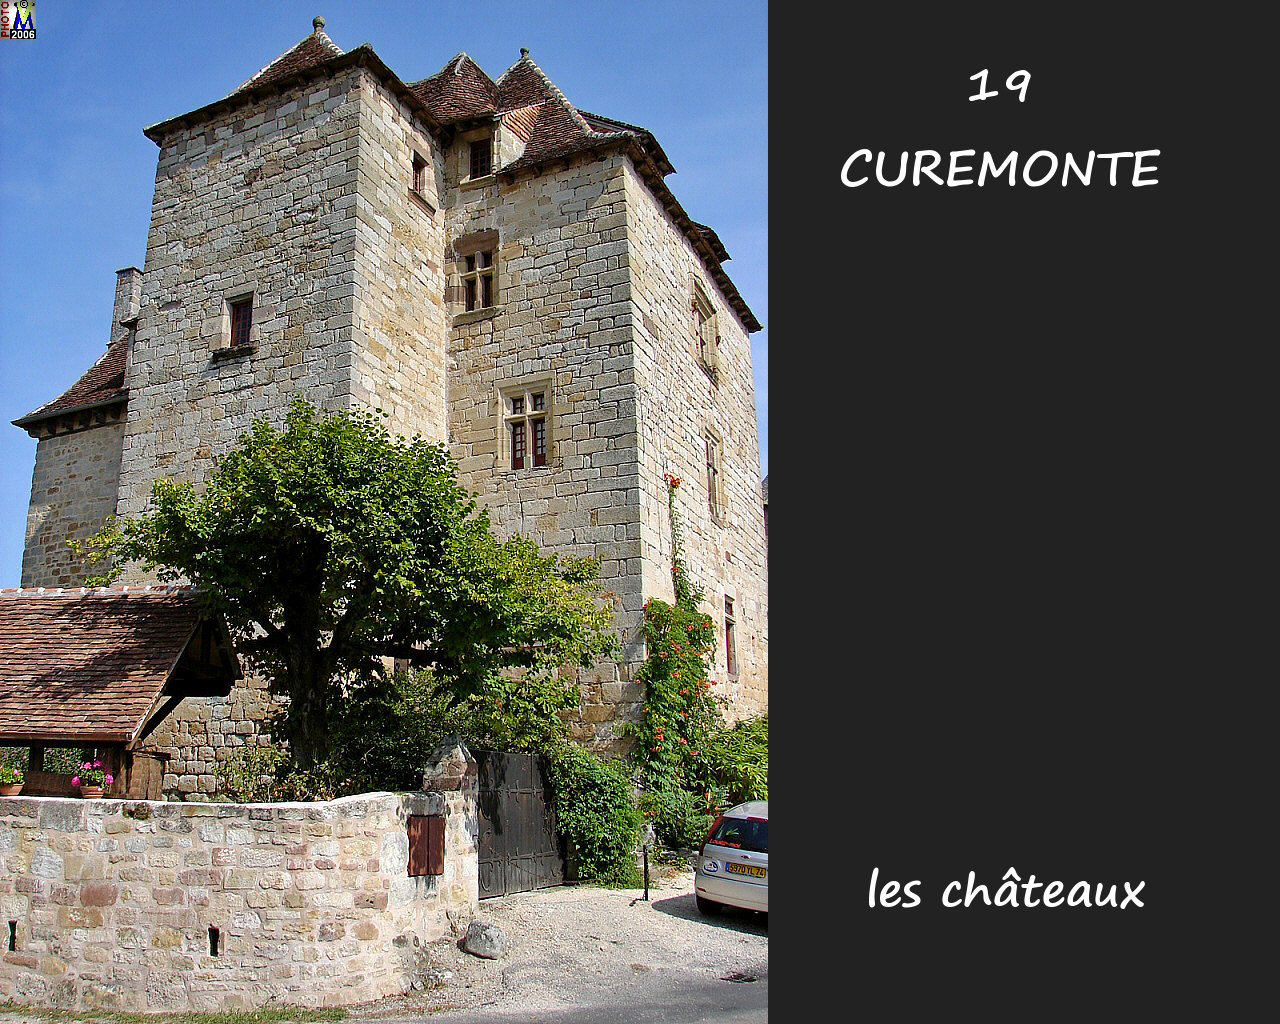 19CUREMONTE_chateau_140.jpg